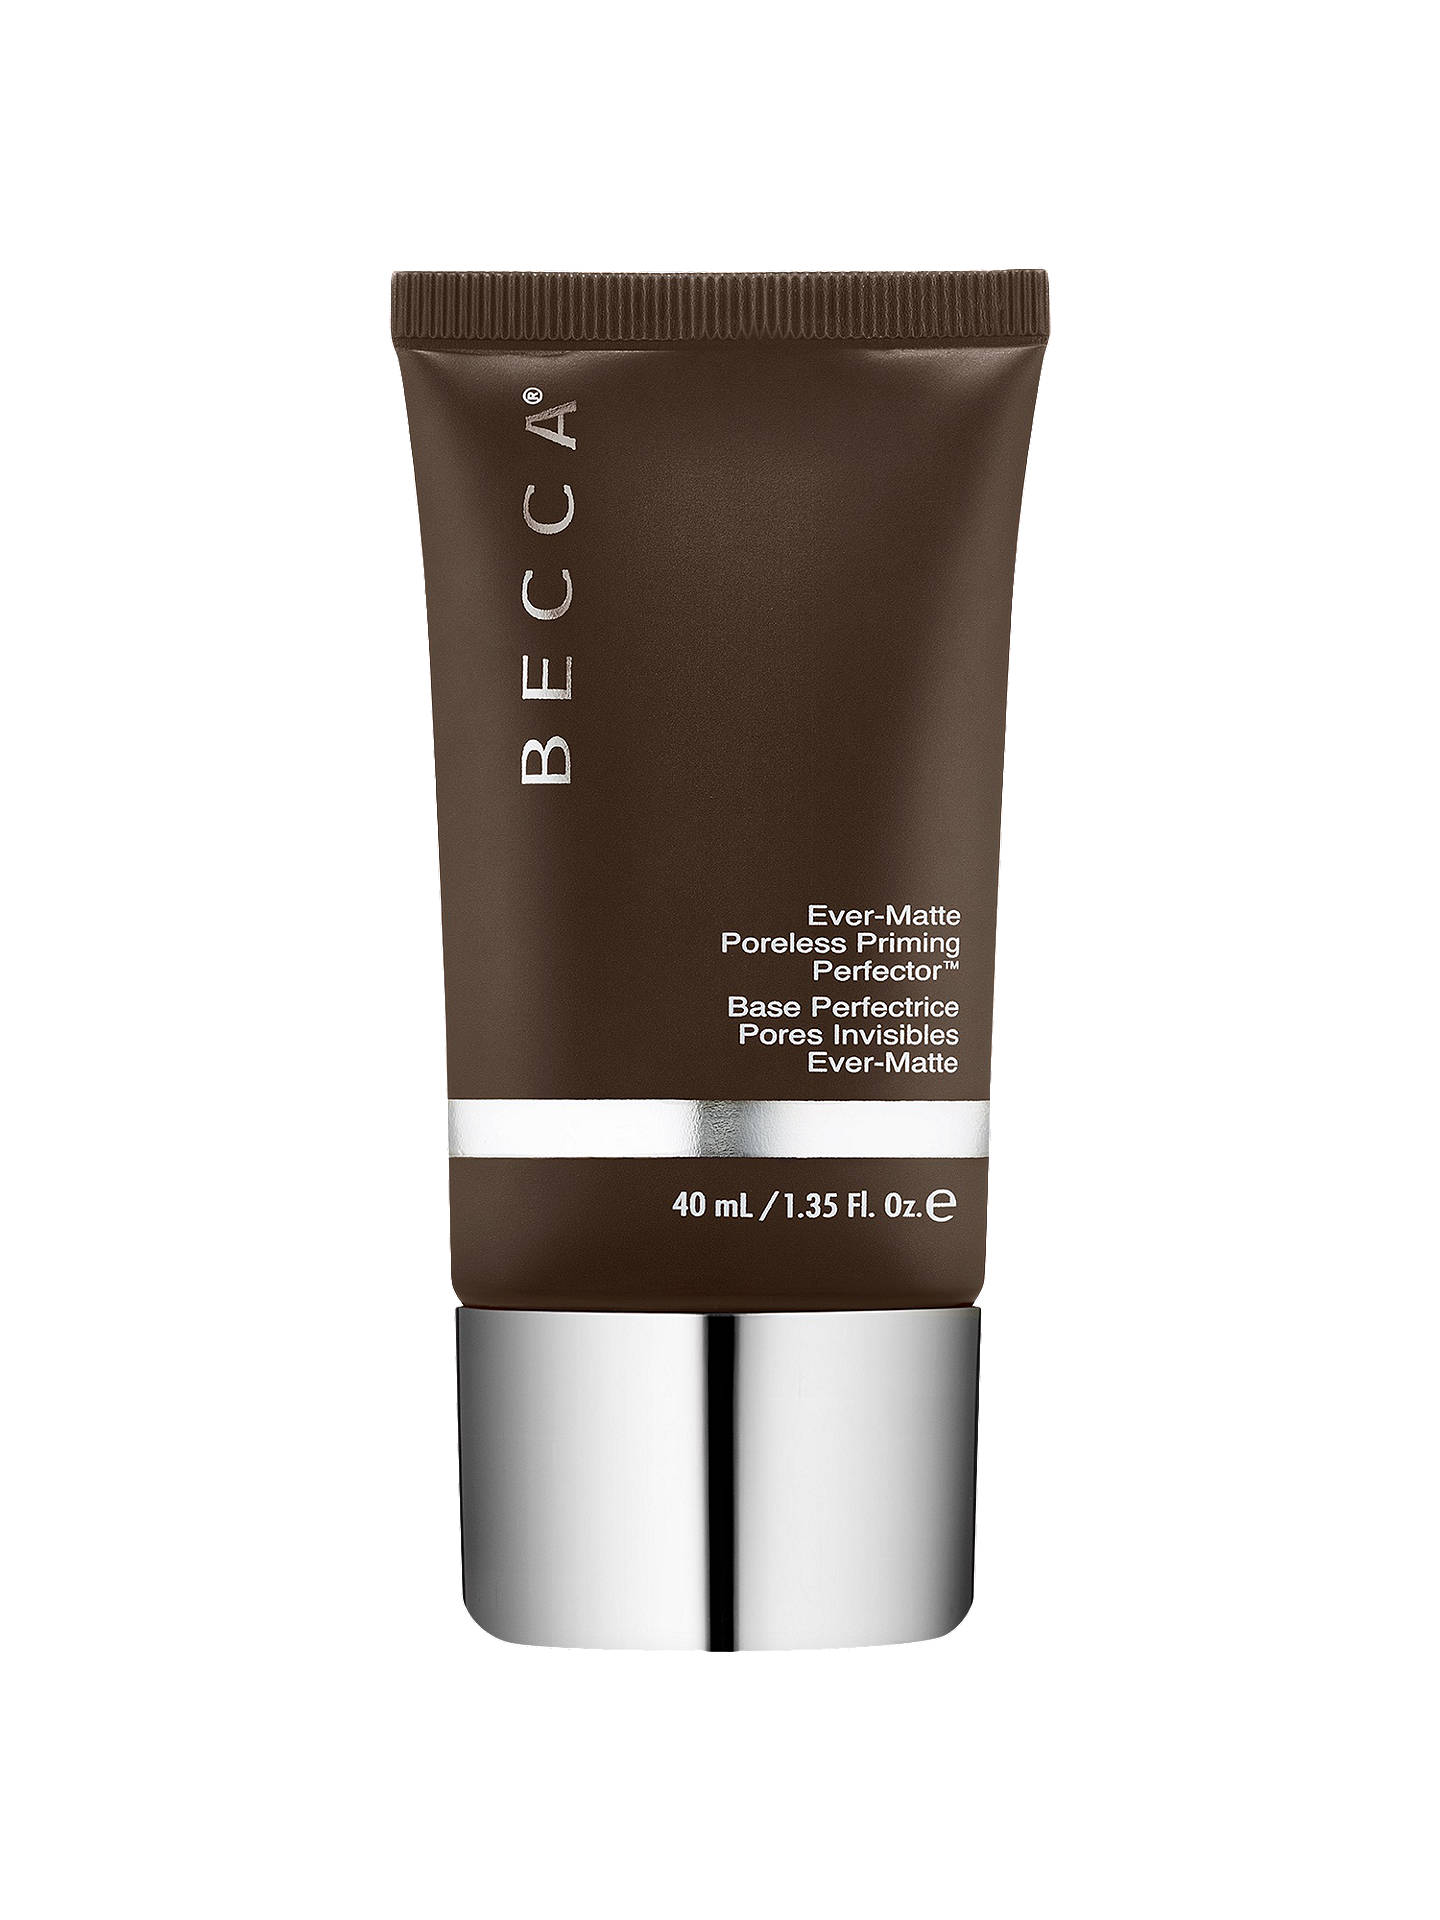 Becca Ever Matte Poreless Priming Perfector™ by Becca